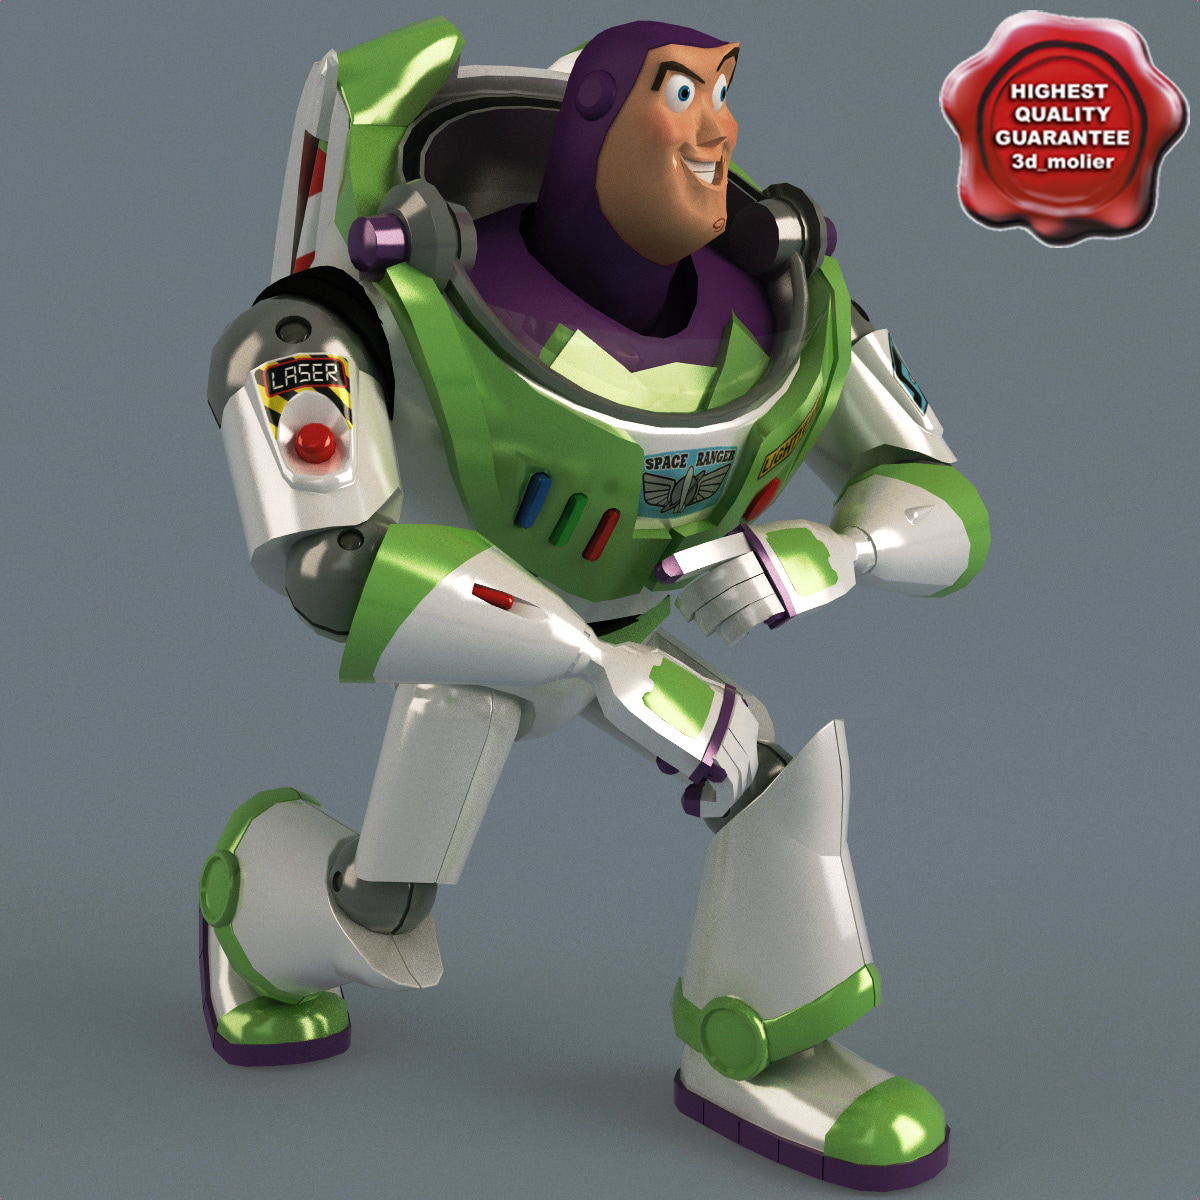 Buzz_Lightyear_Pose4_00.jpg